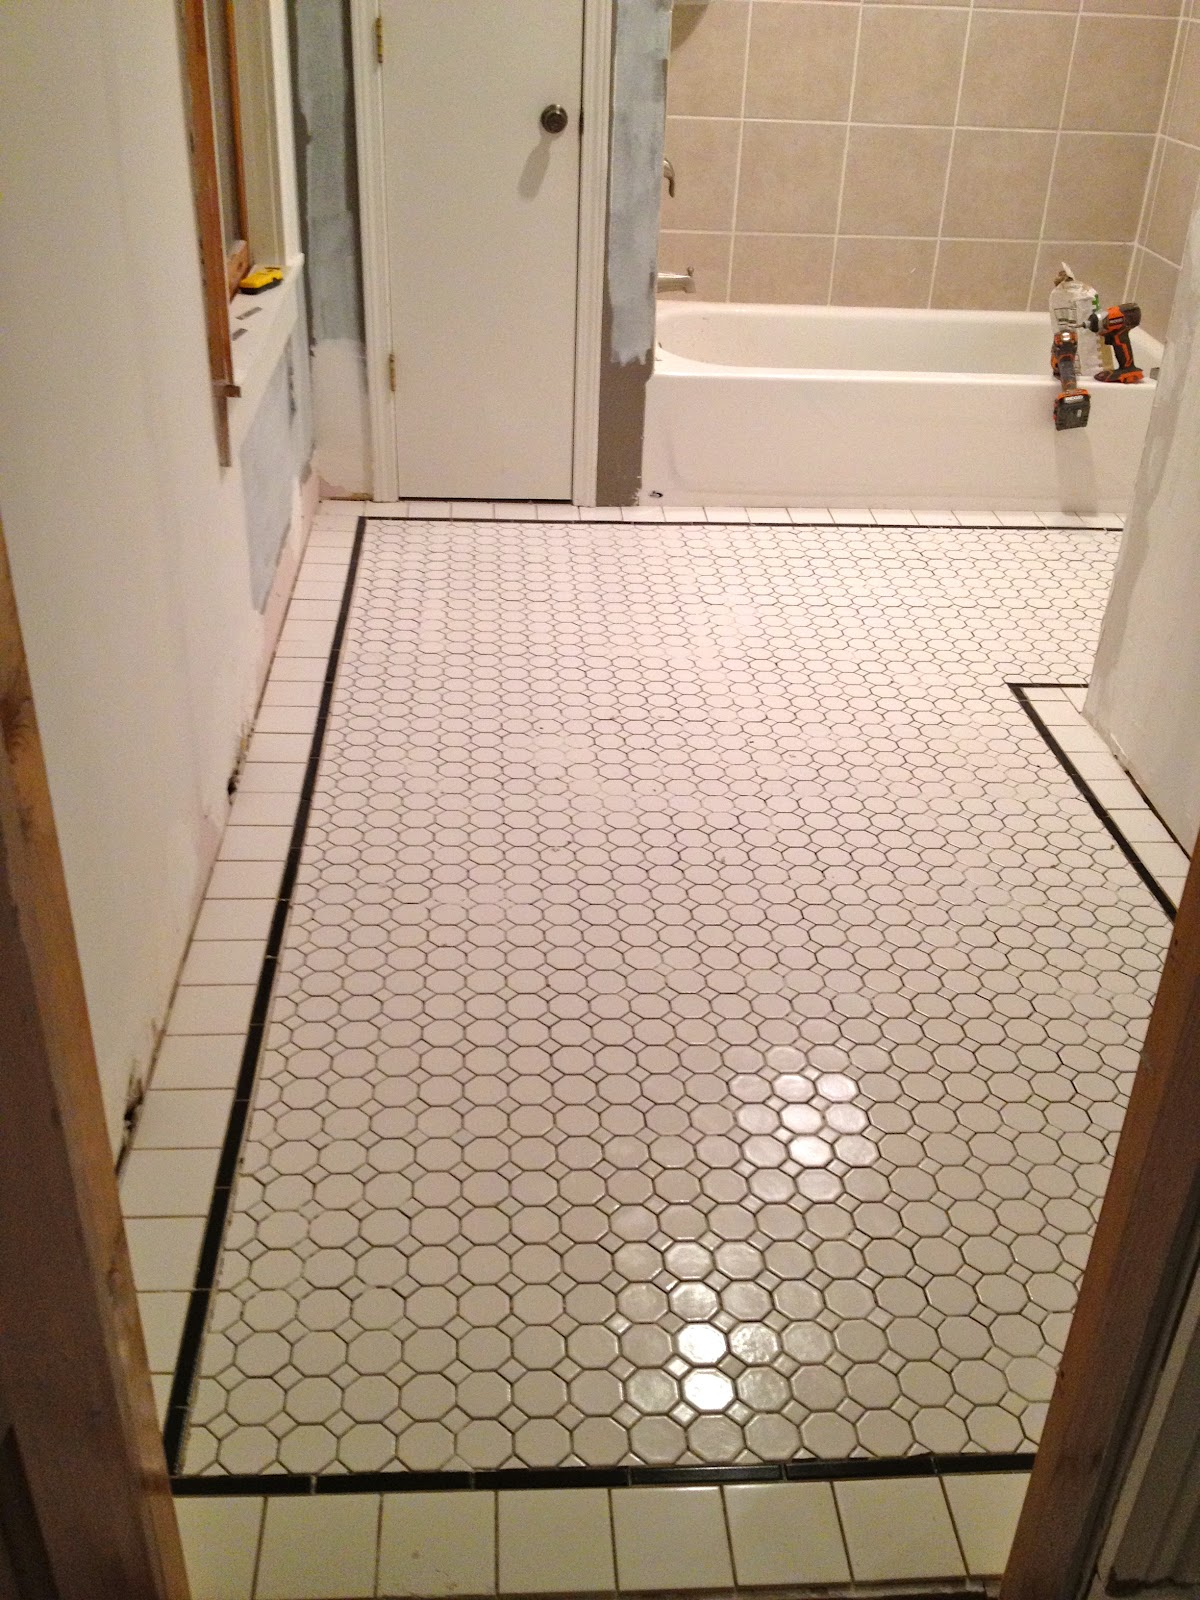 Mel & Liza: Bathroom Renovation: Finishing the Tile Floors